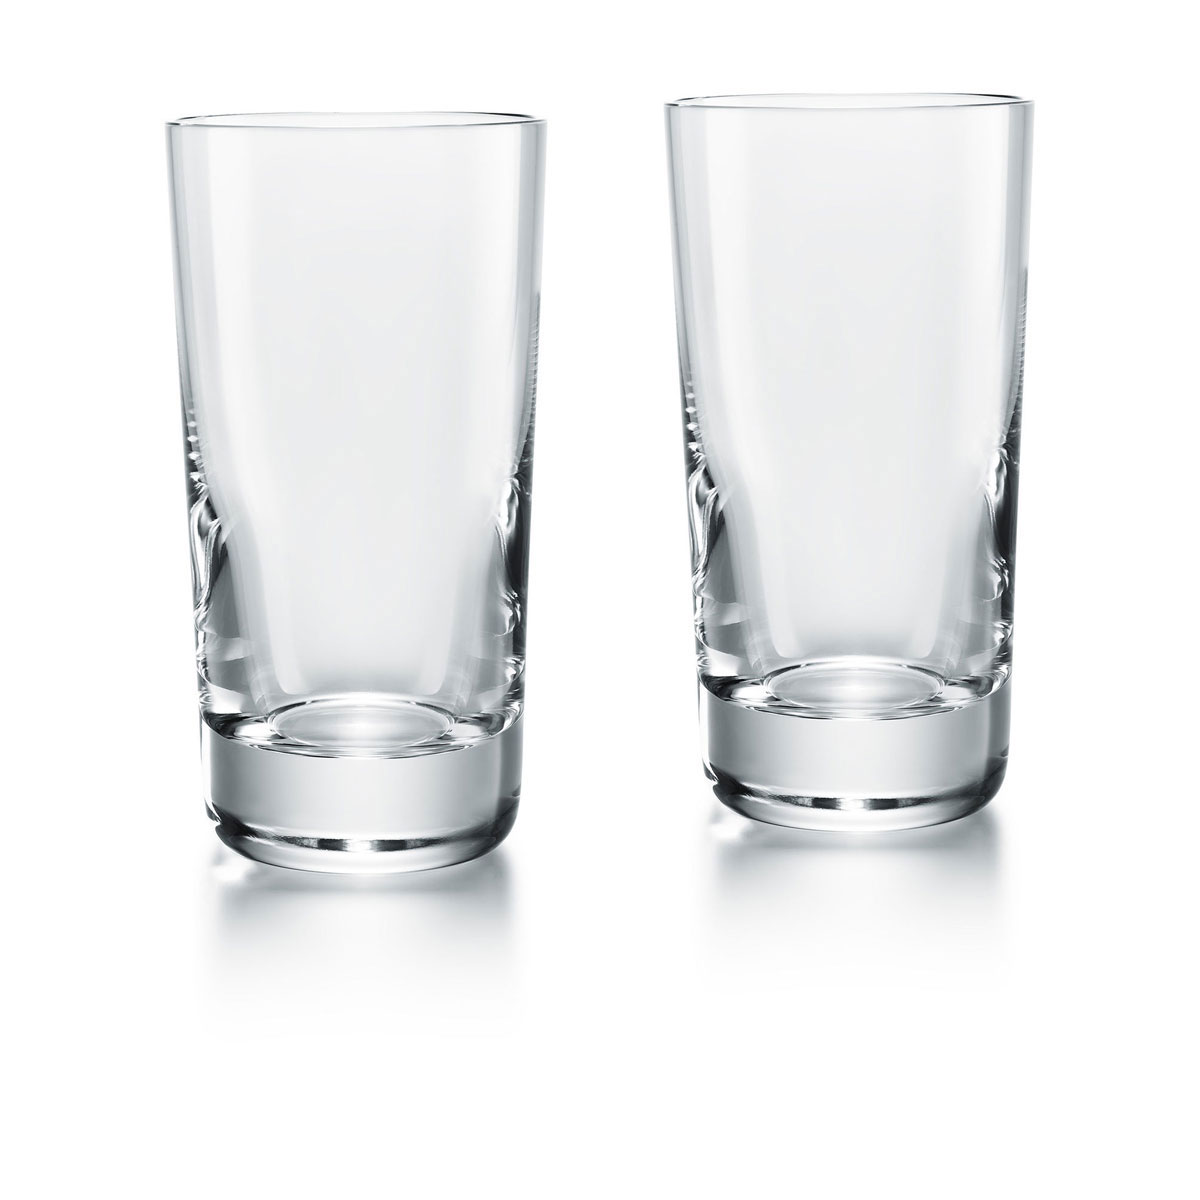 Baccarat Crystal, Perfection Crystal Highball, Pair